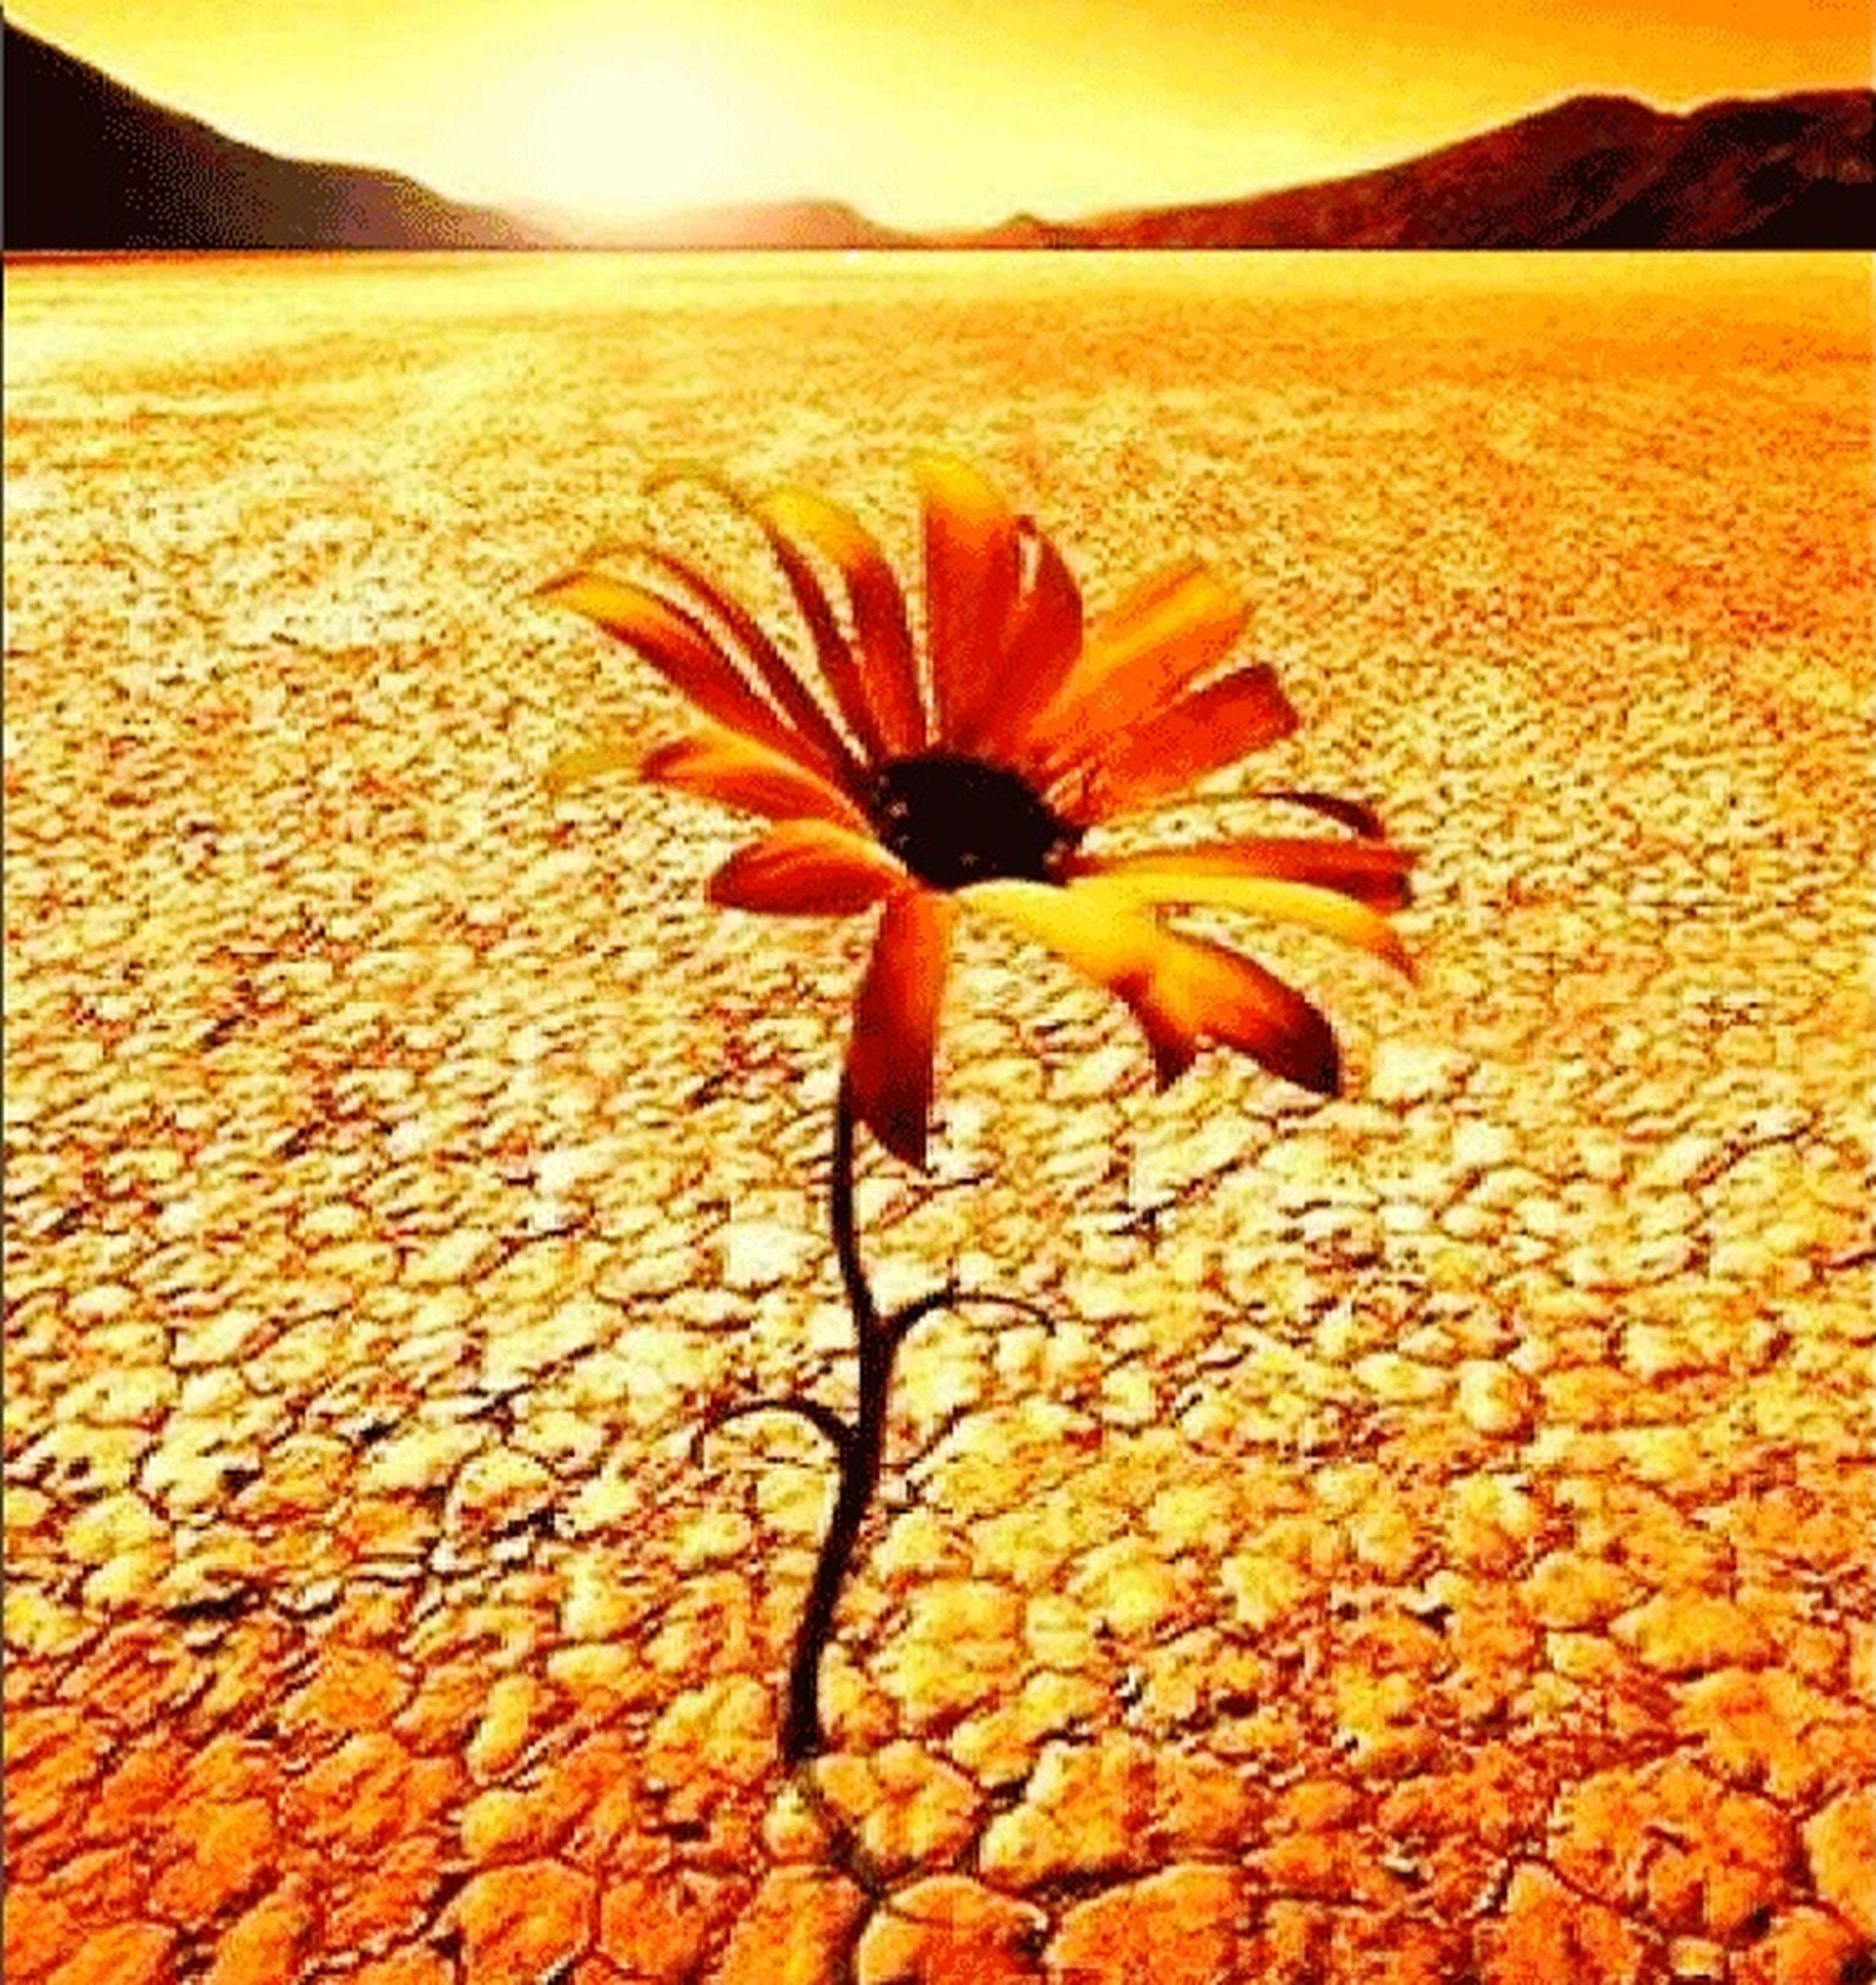 flower, petal, fragility, flower head, orange color, beauty in nature, nature, freshness, yellow, sunset, growth, blooming, plant, sunlight, leaf, field, single flower, outdoors, no people, tranquility